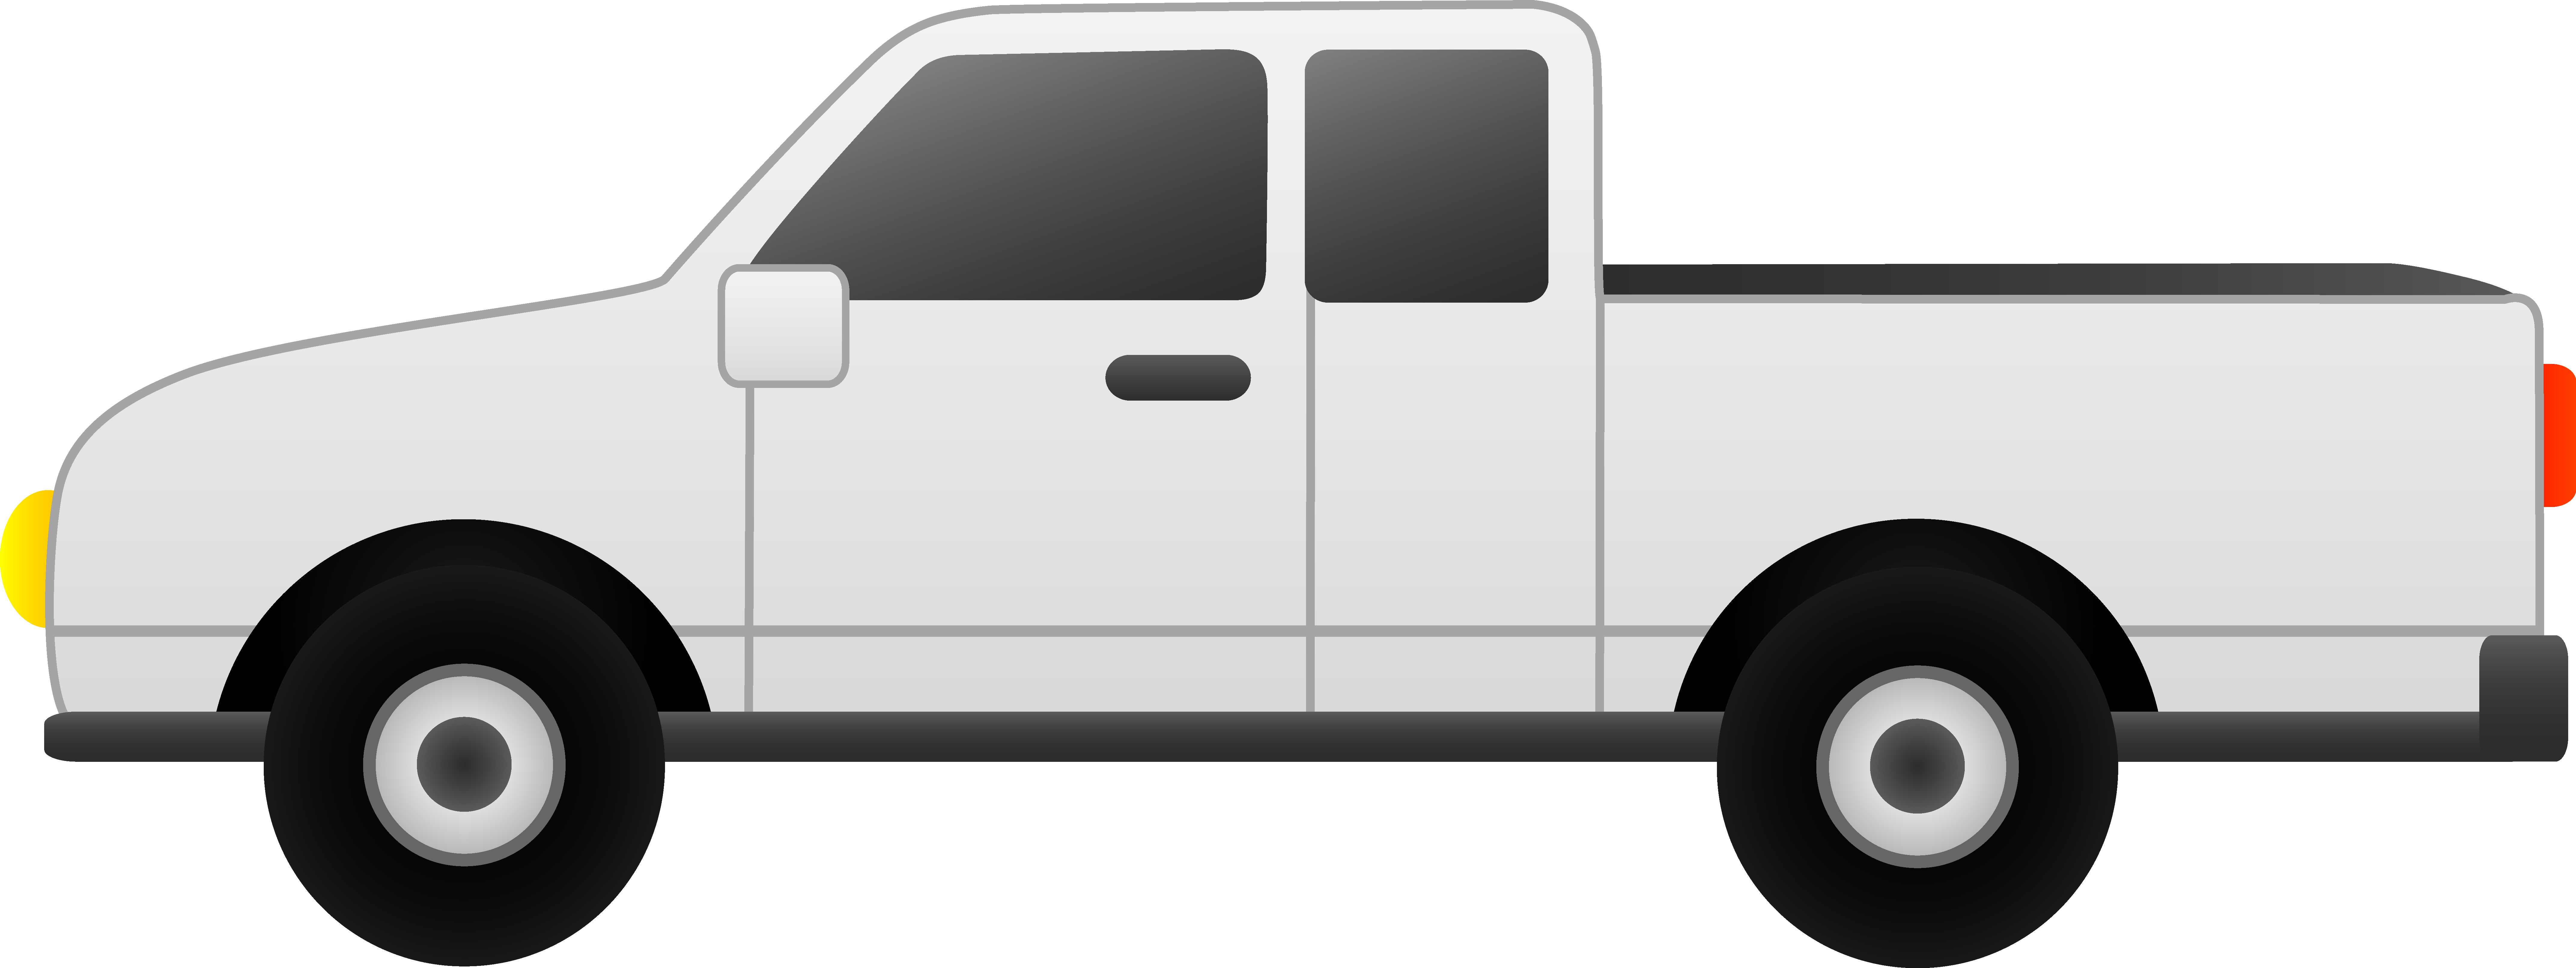 Pickup clipart yellow truck. Transparent background huge